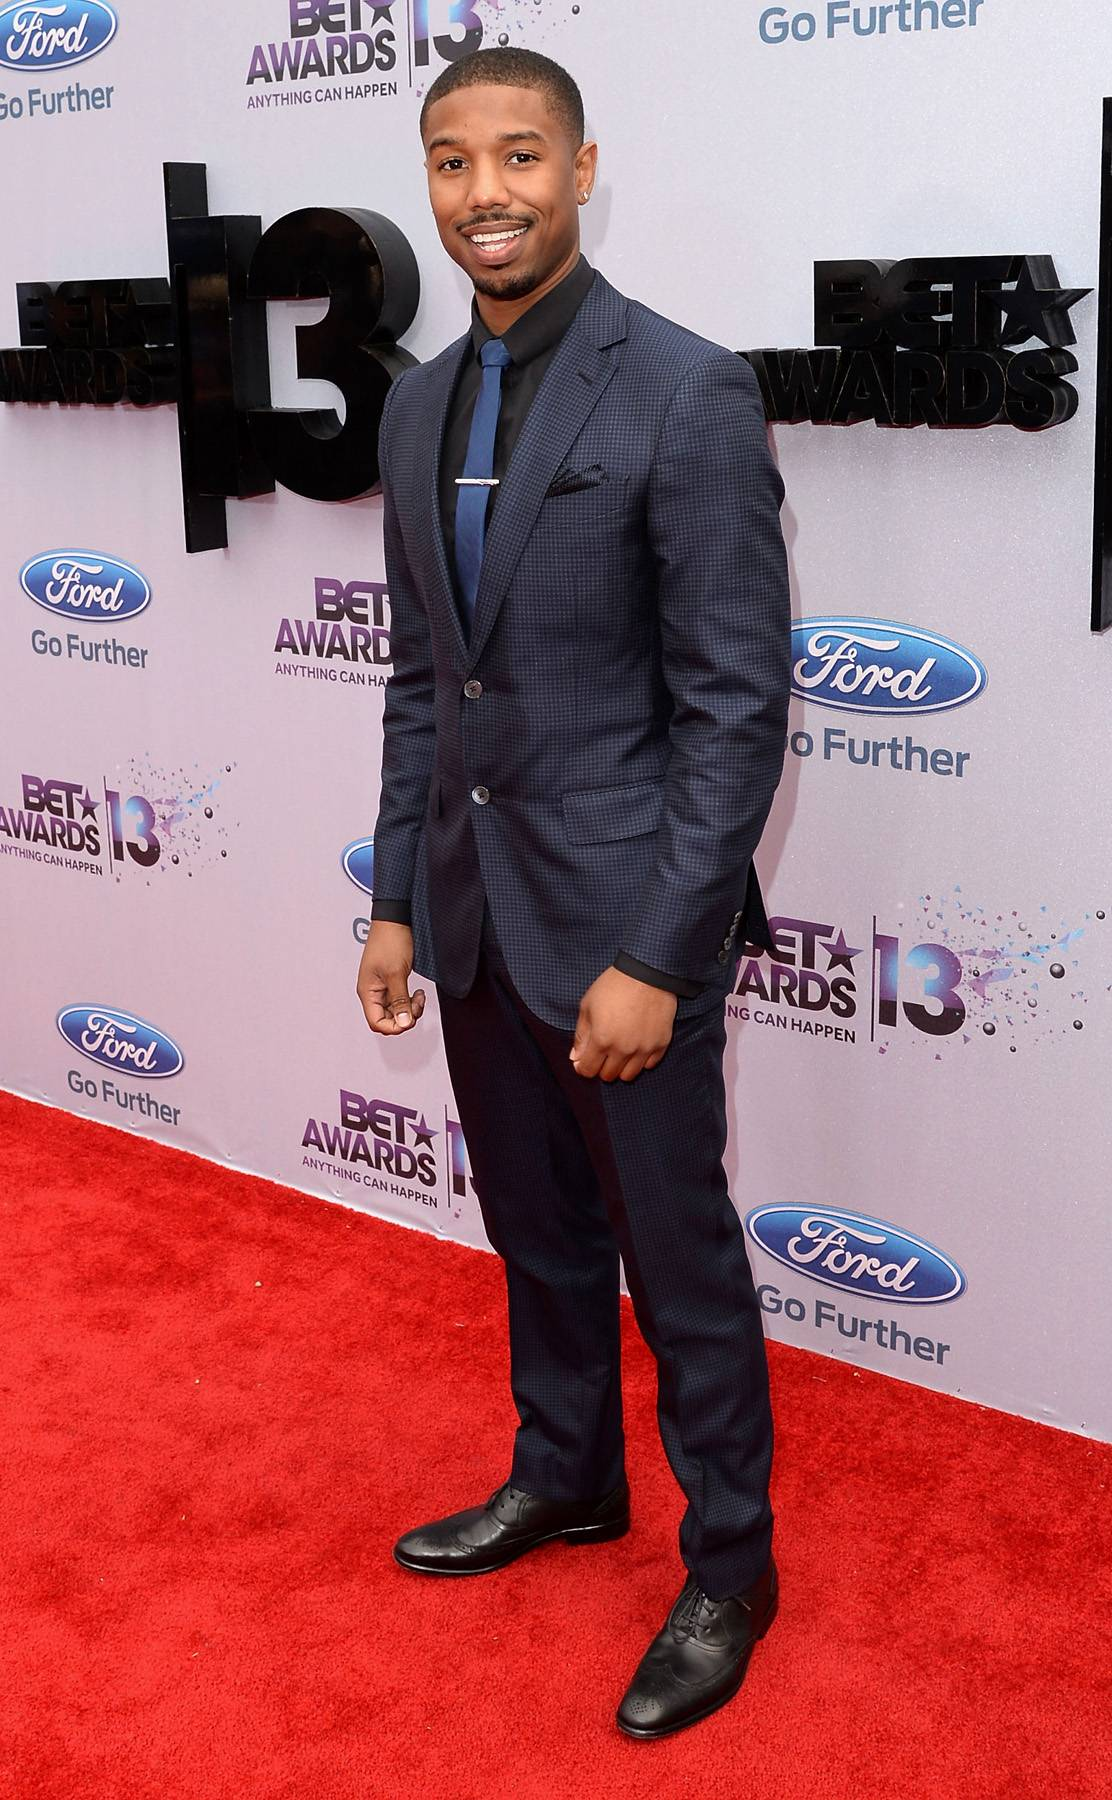 Dapper - Fruitvale star Michael B. Jordan knows how to wear a suit. The young actor steps out in navy and black.   (Photo: Jason Merritt/BET/Getty Images for BET)